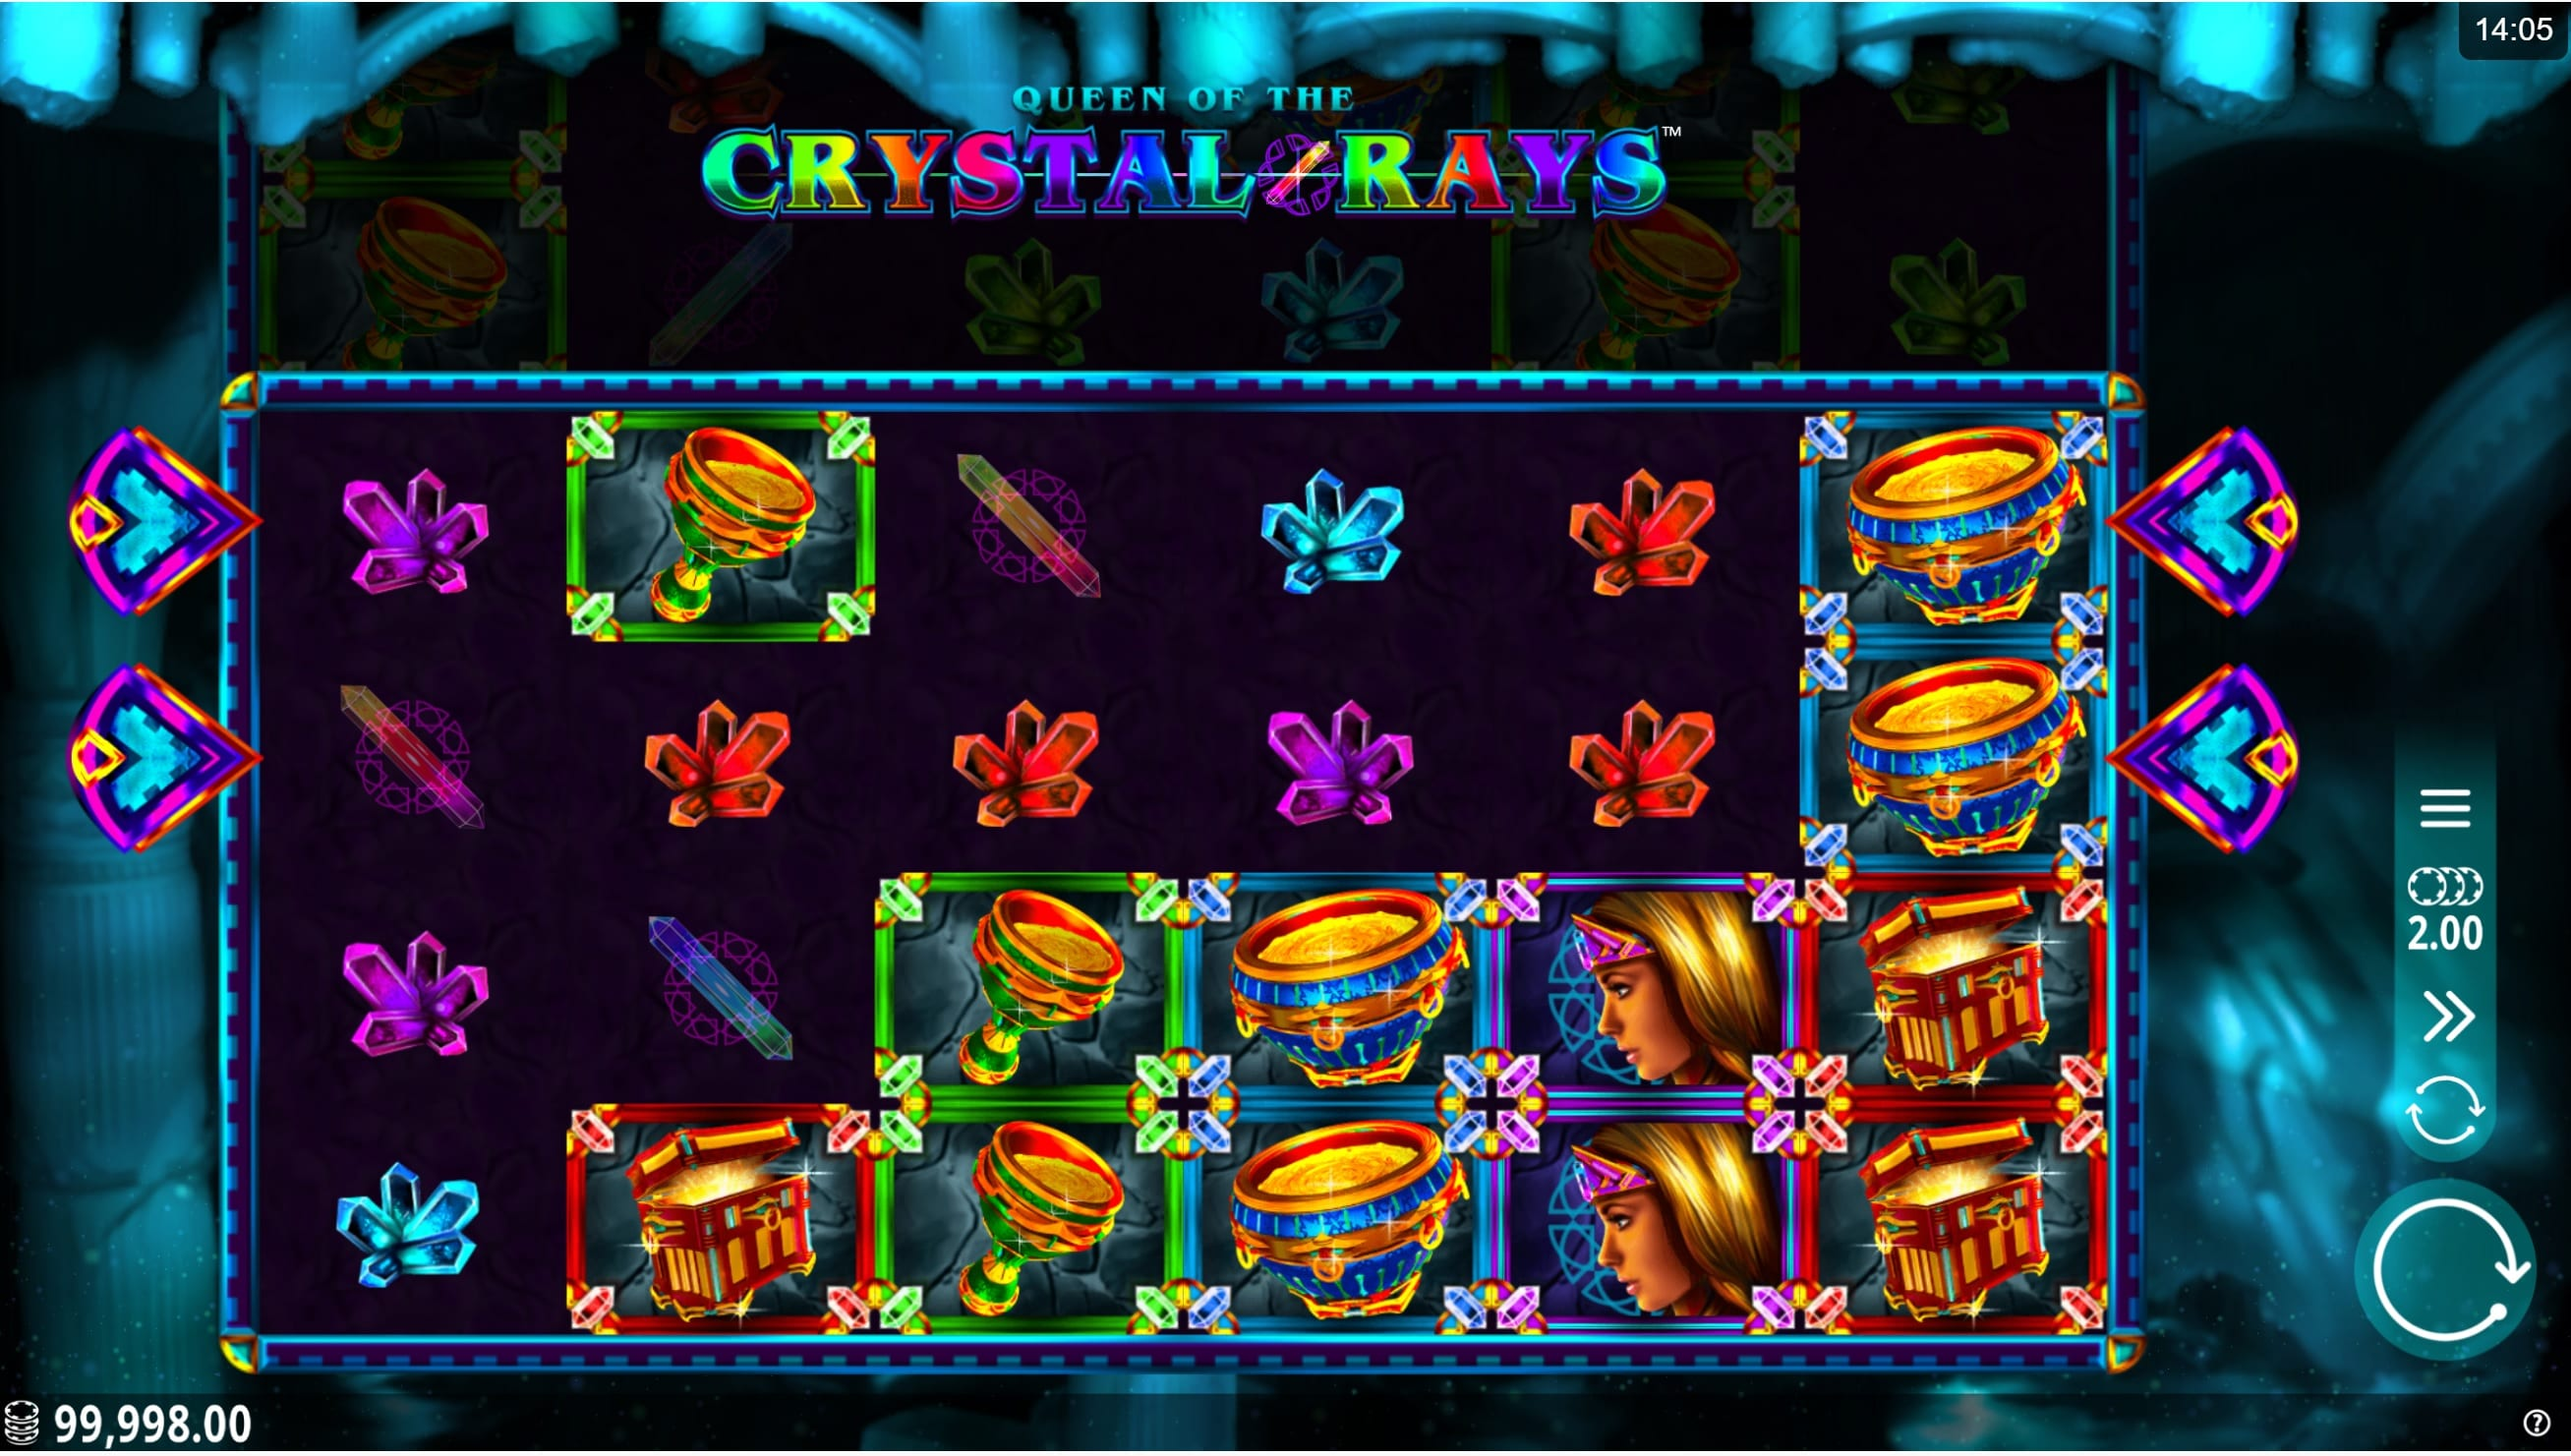 Queen of the Crystal Rays Casino gameplay